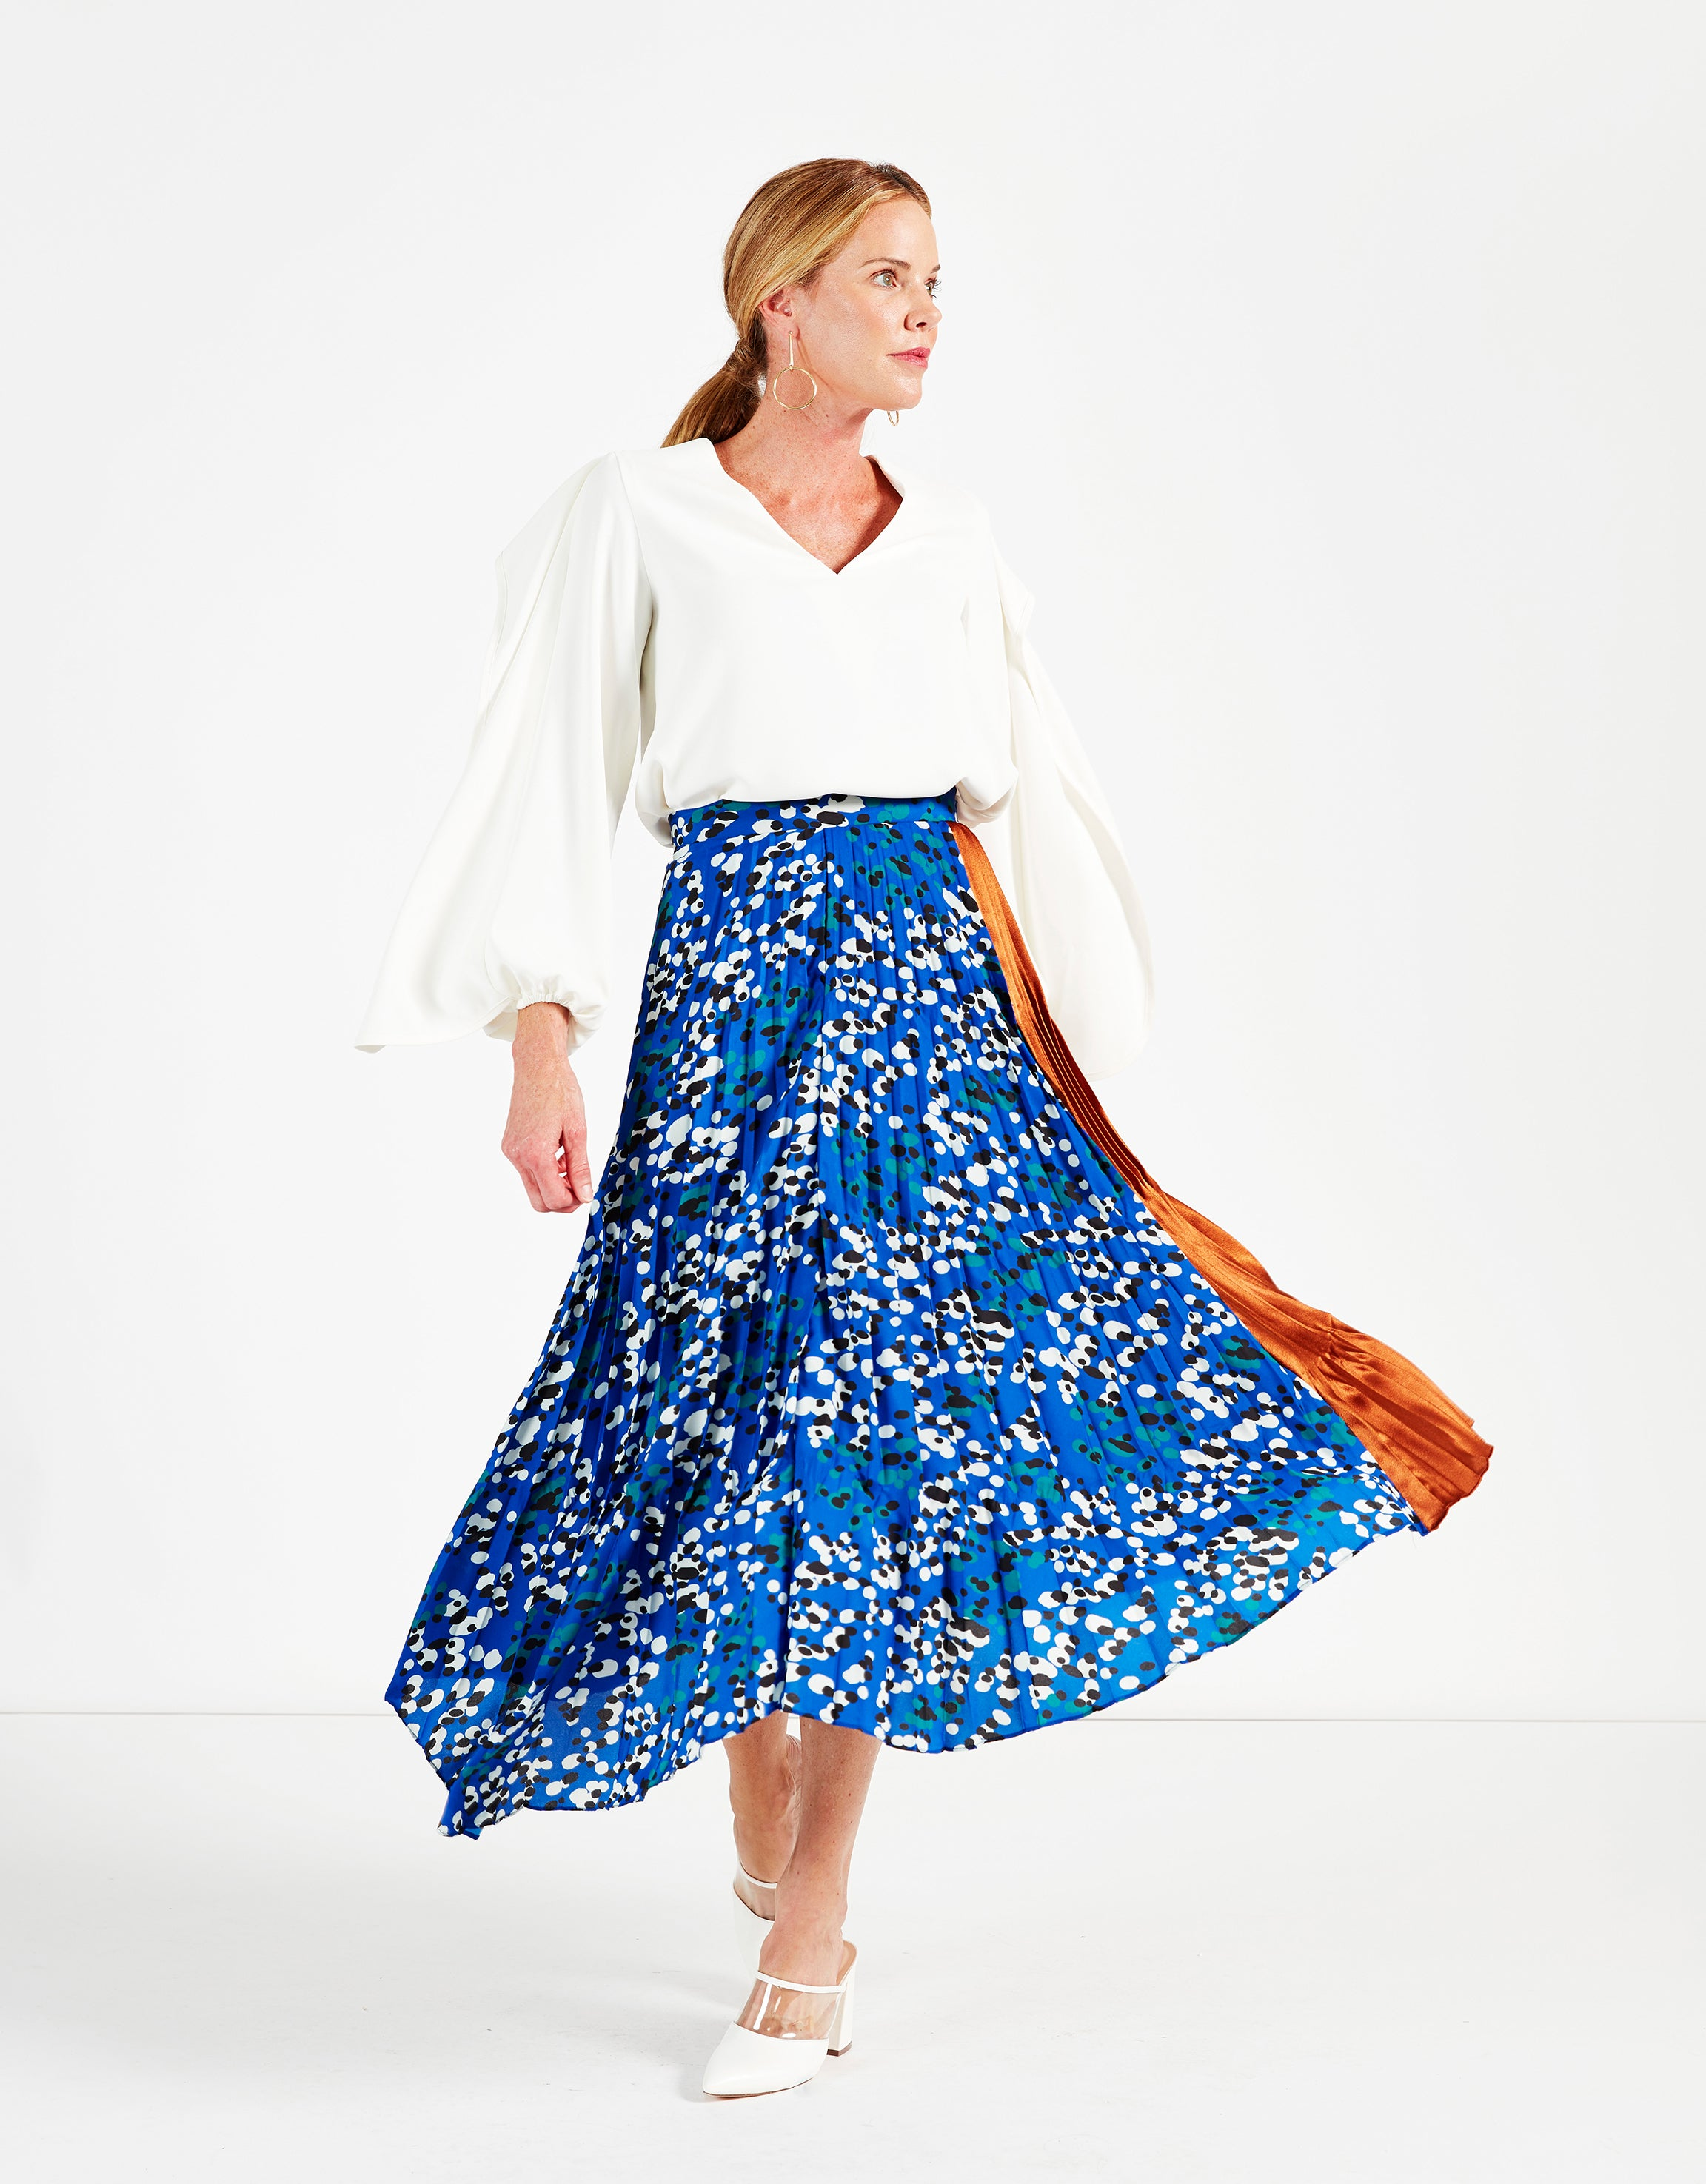 Riley Kate Skirt